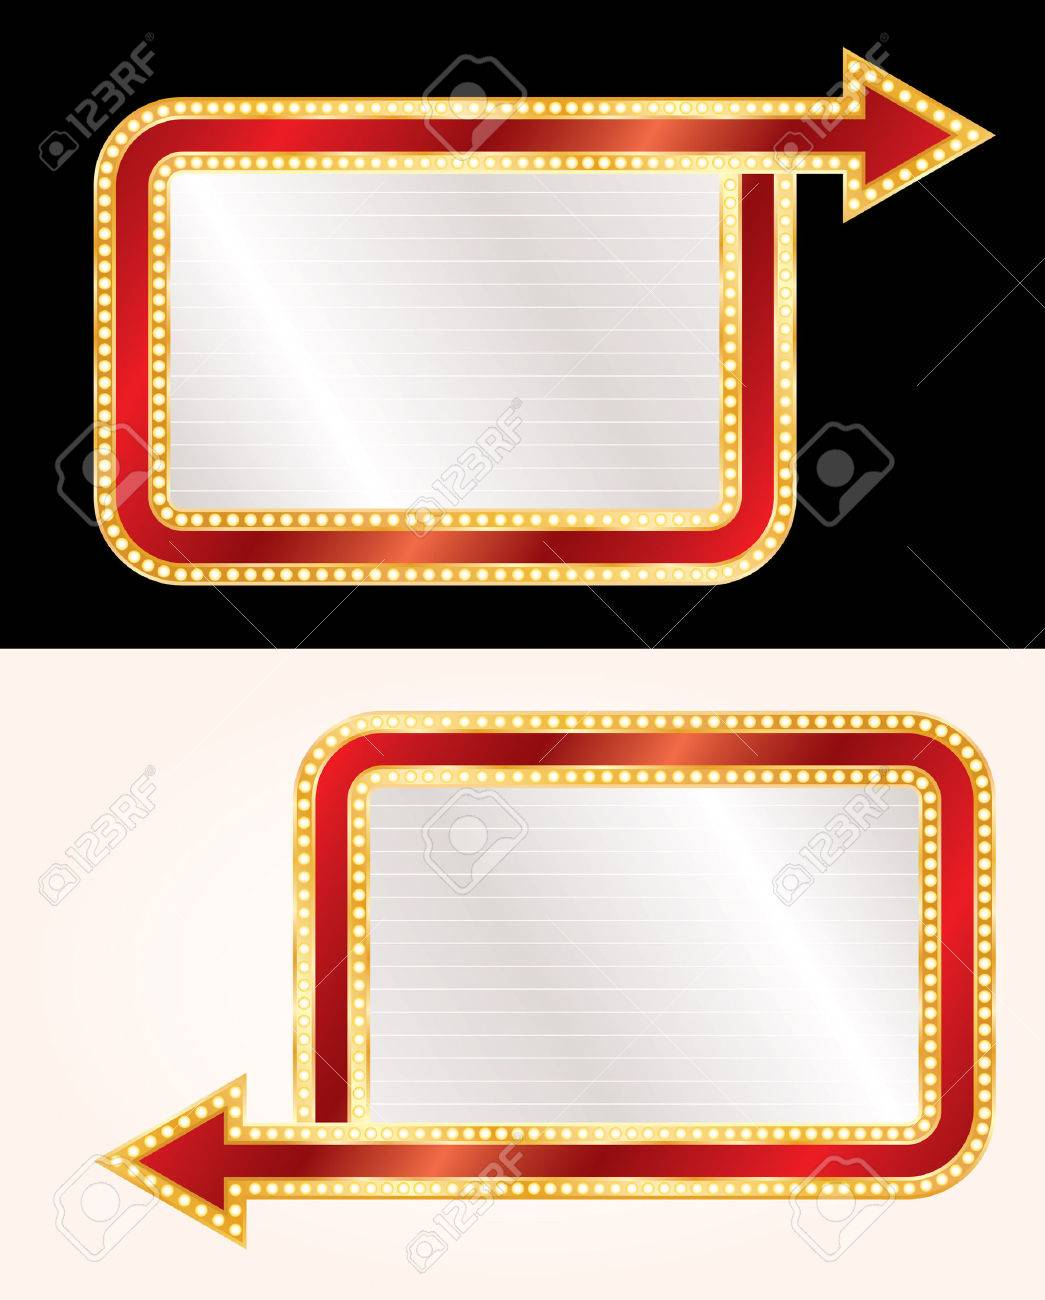 blank billboards with arrows and bulb lamps - 32605478